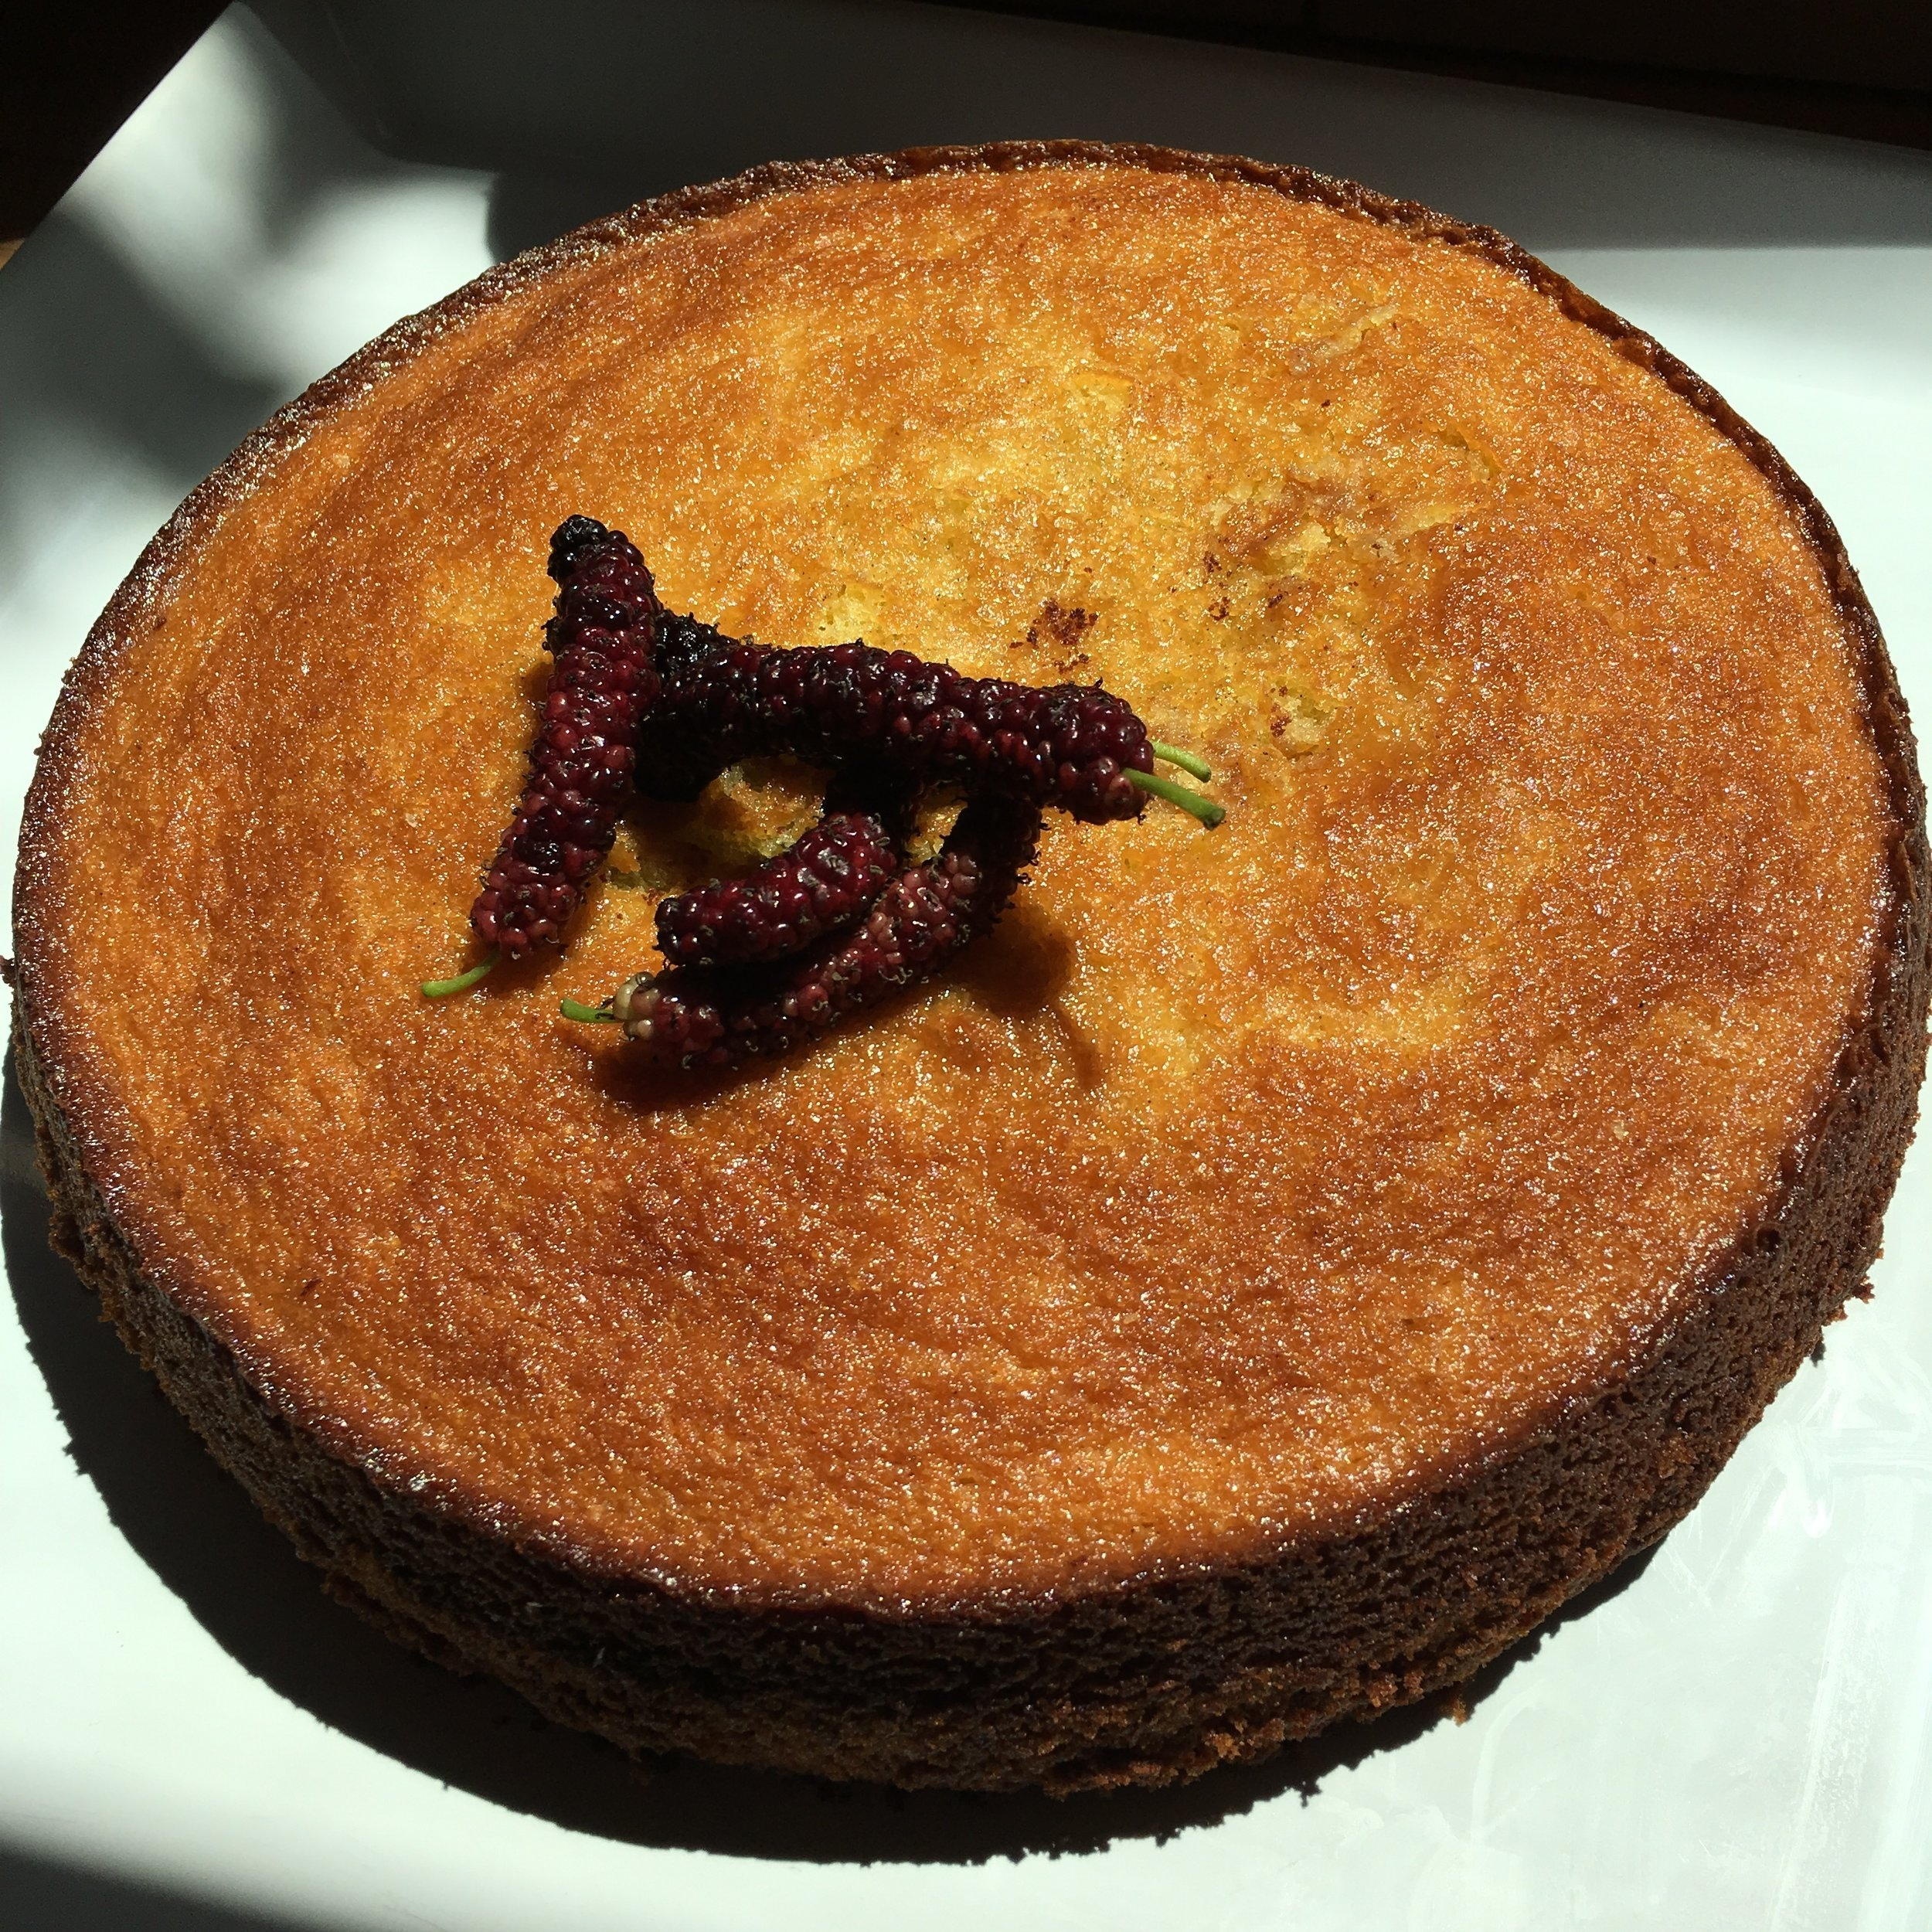 olive oil cake with Pakistani mulberries